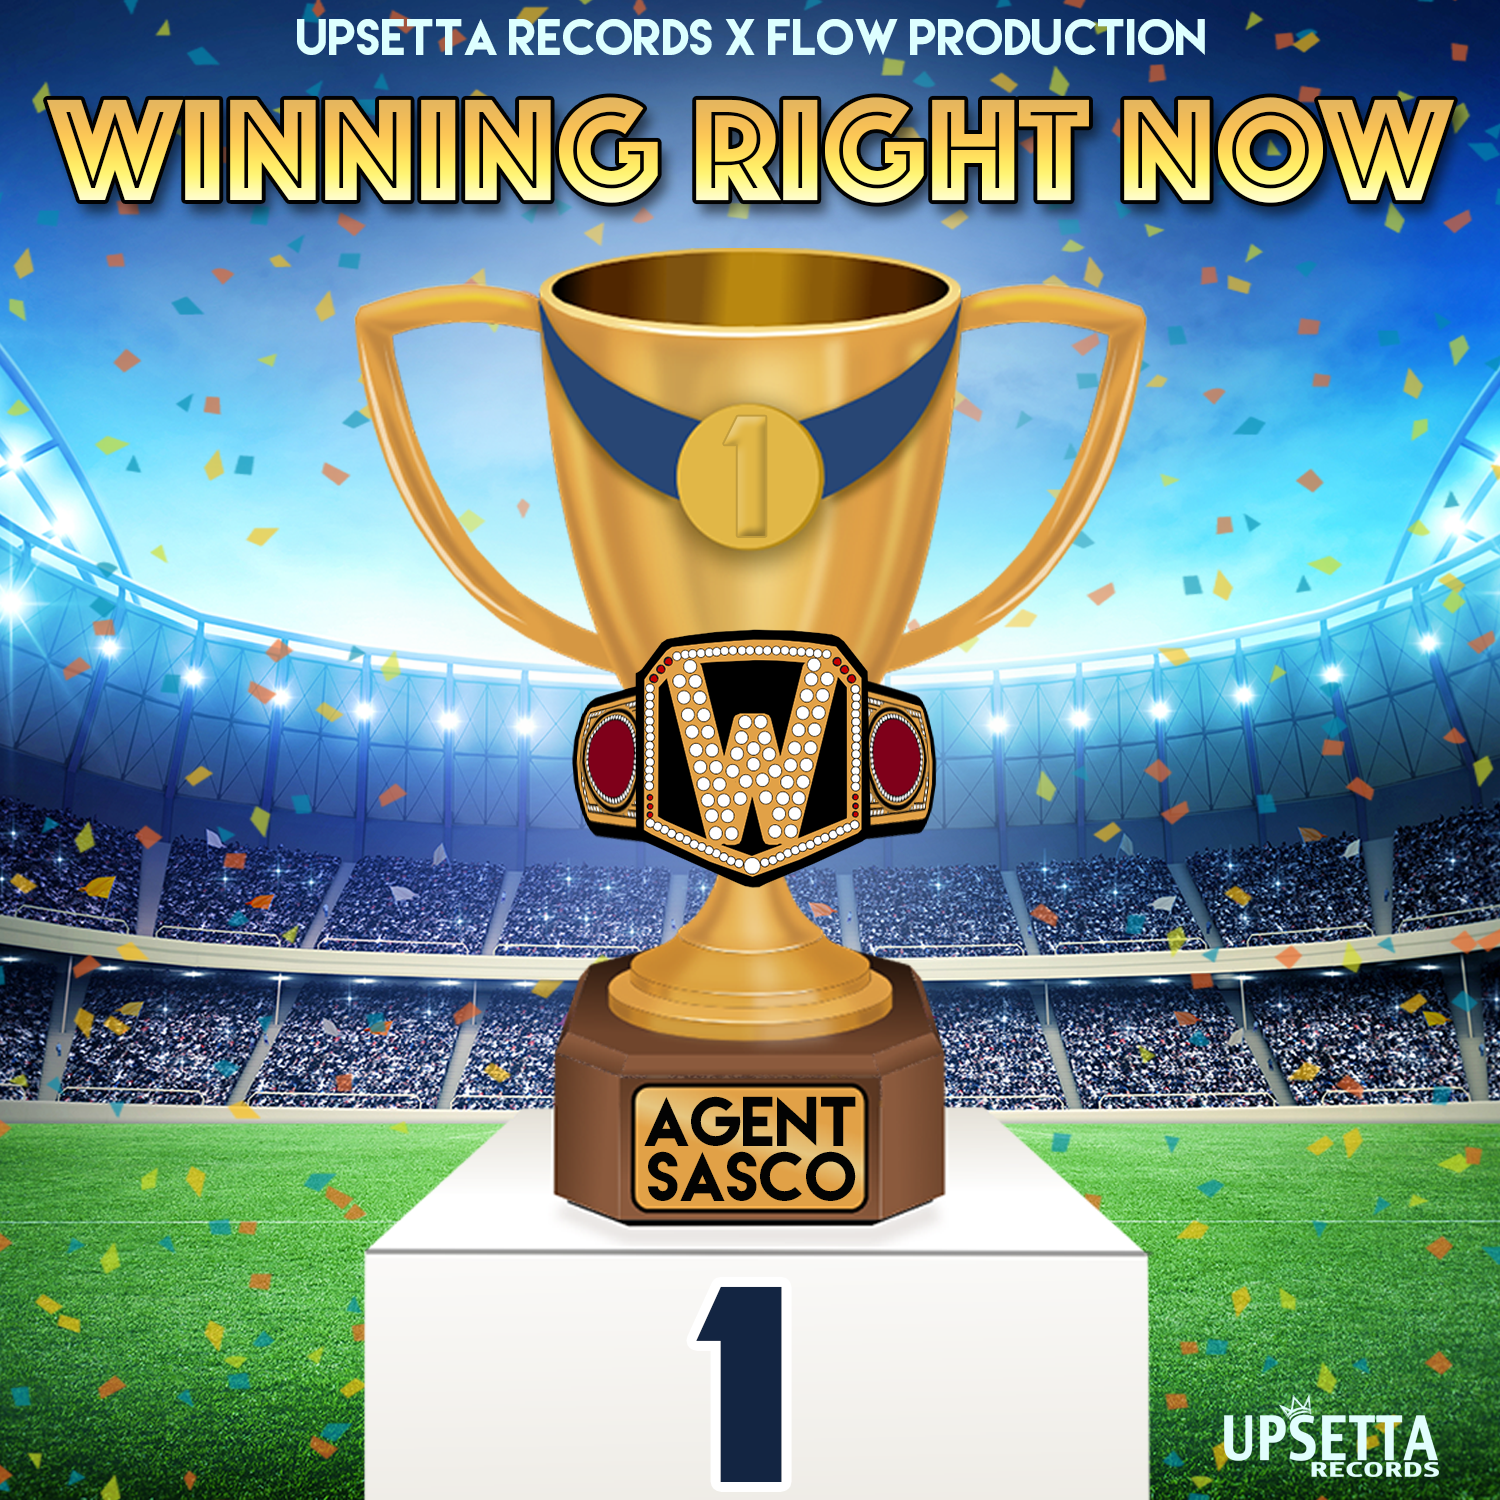 Winning Right Now Lyrics by Agent Sasco (Upsetta Records)